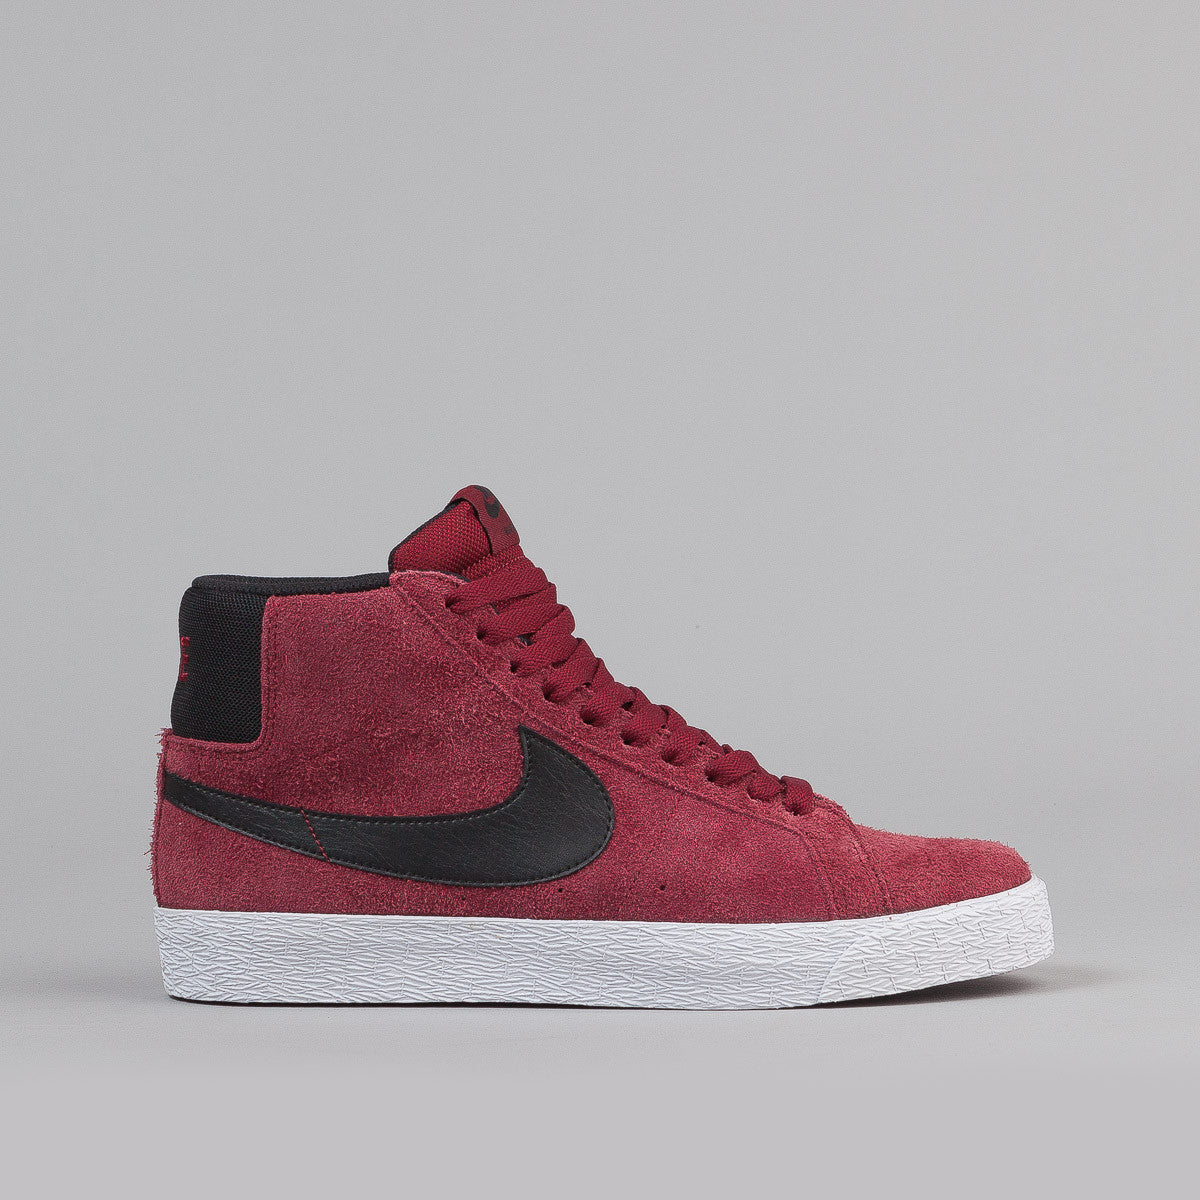 Nike SB Blazer Premium SE Shoes - Red / Black / White